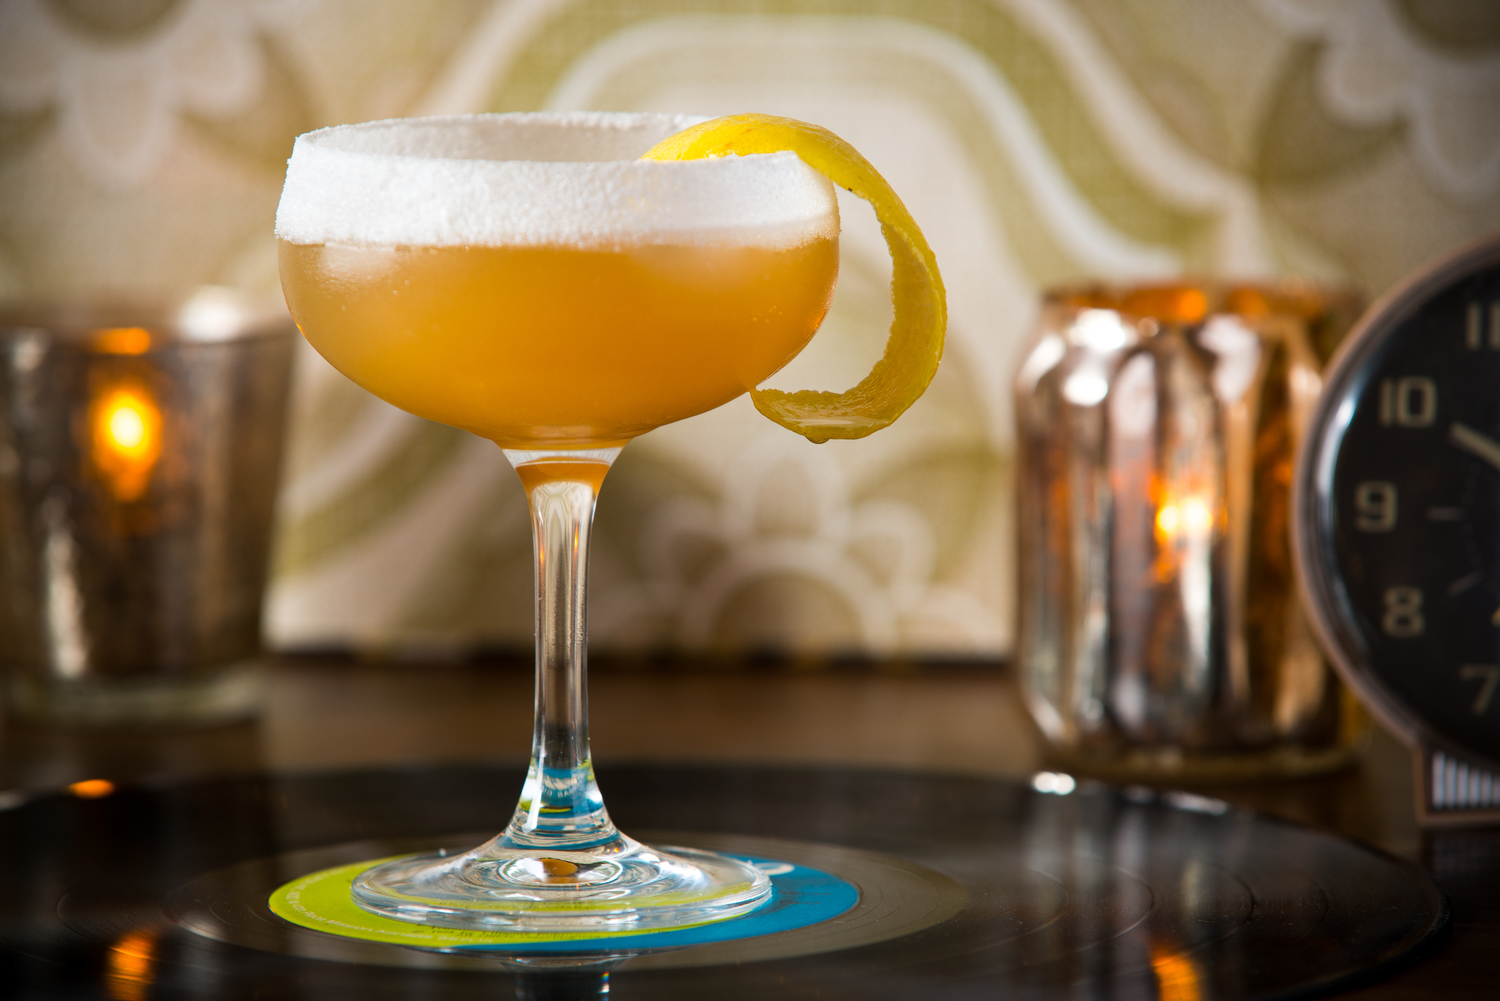 A frothy orange cocktail in a coupe glass.